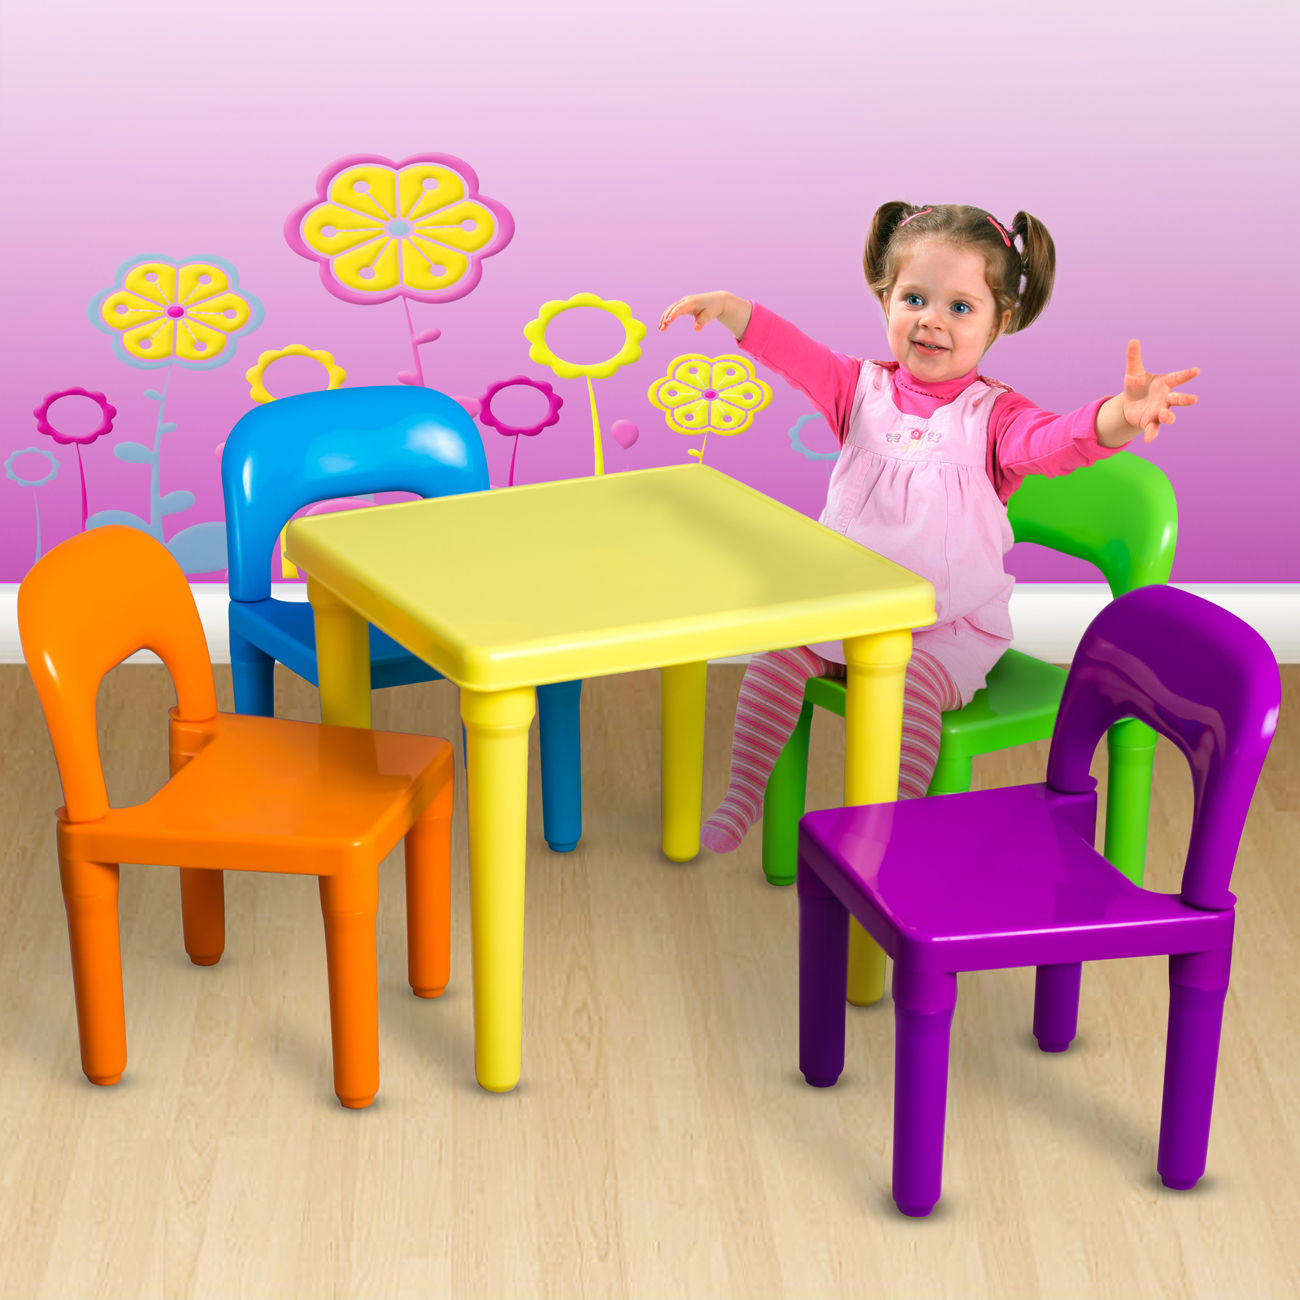 Kids Table and Chairs Play Set Toddler Child Toy Activity